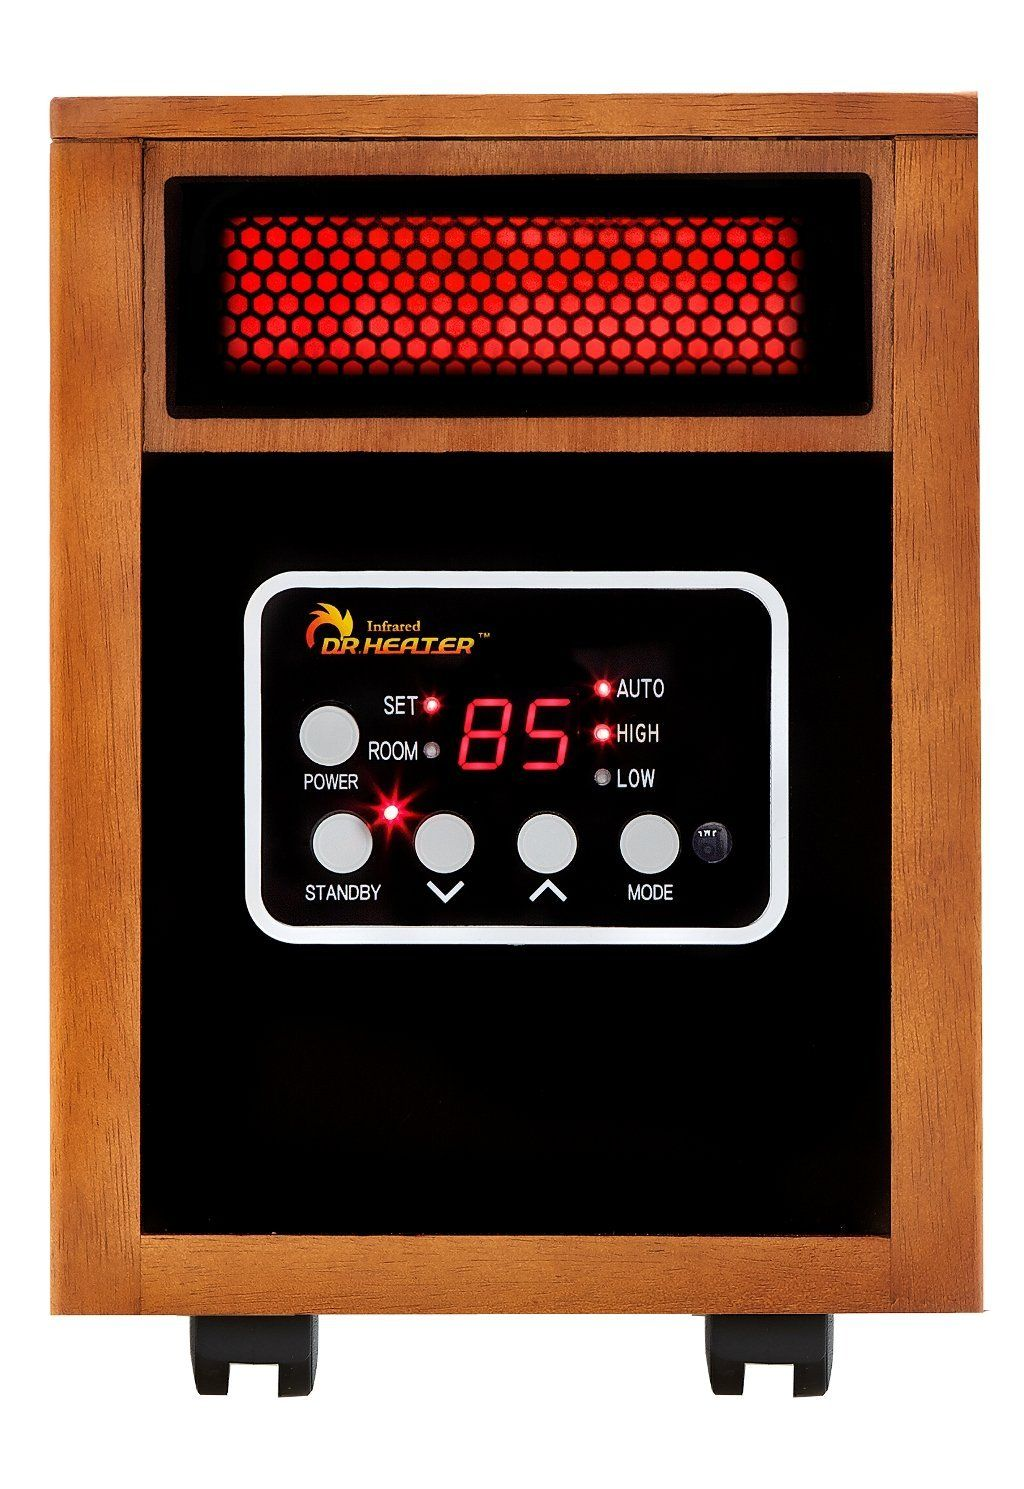 Pin By Talentraters On Latest Classifieds Portable Space Heater